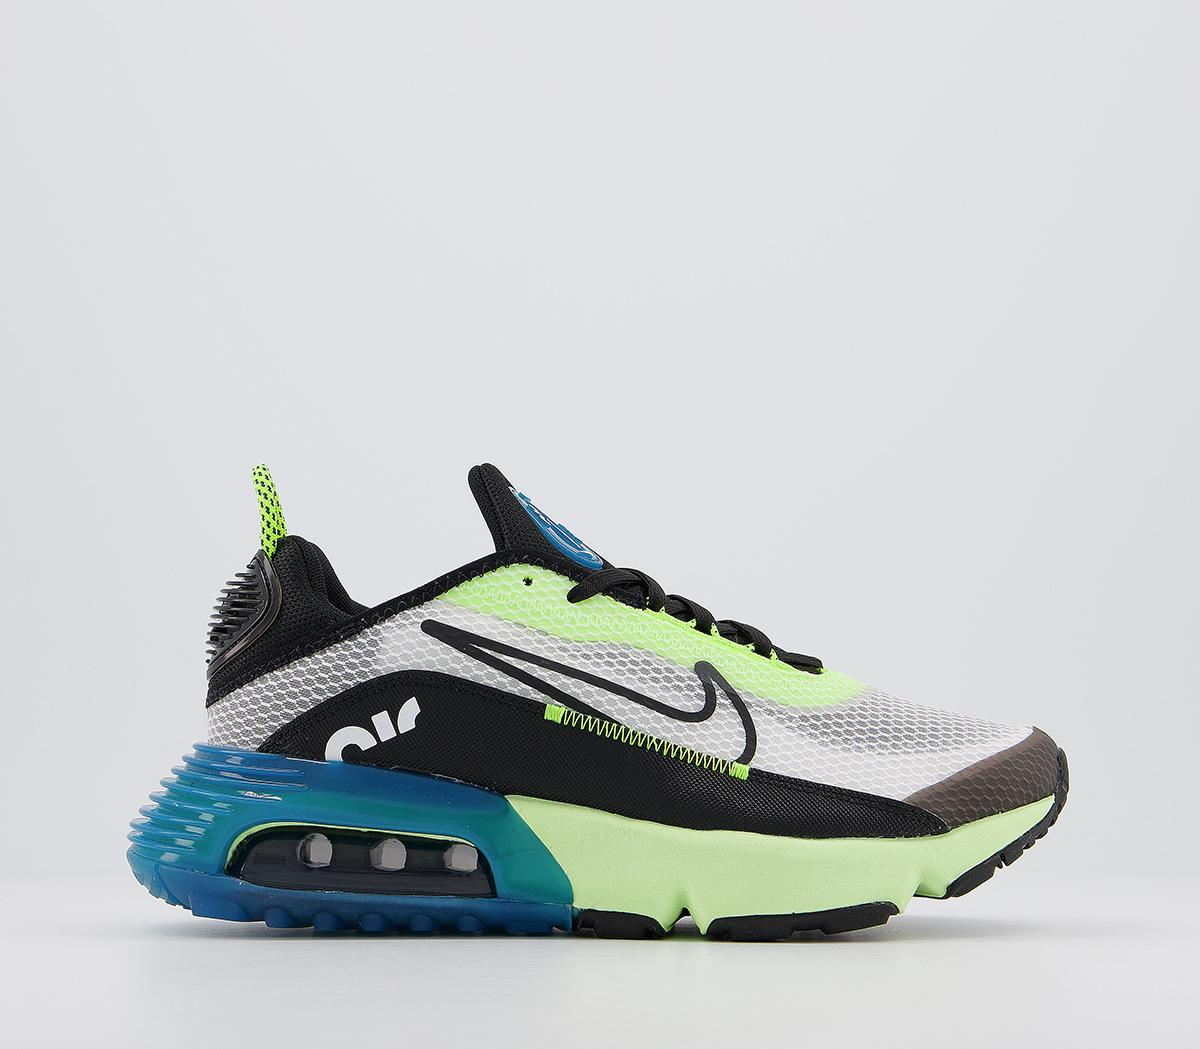 Air Max 2090 Gs Trainers